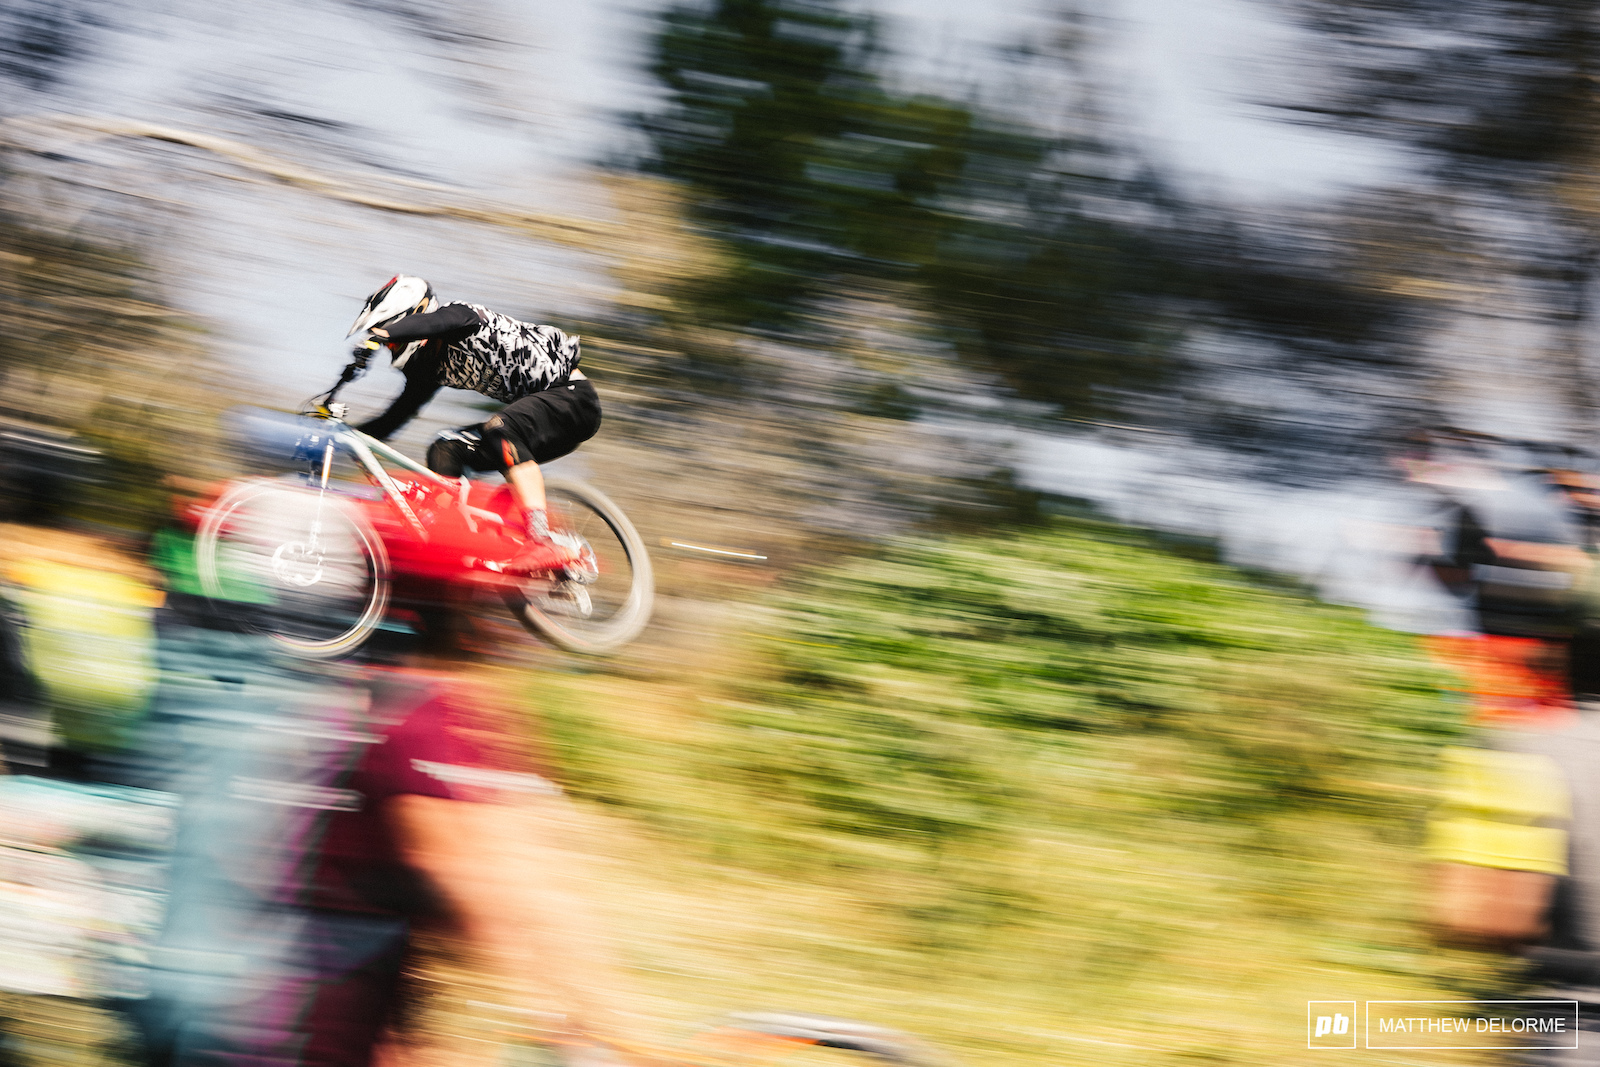 Every bit of momentum counts on the Sea Otter DH track.